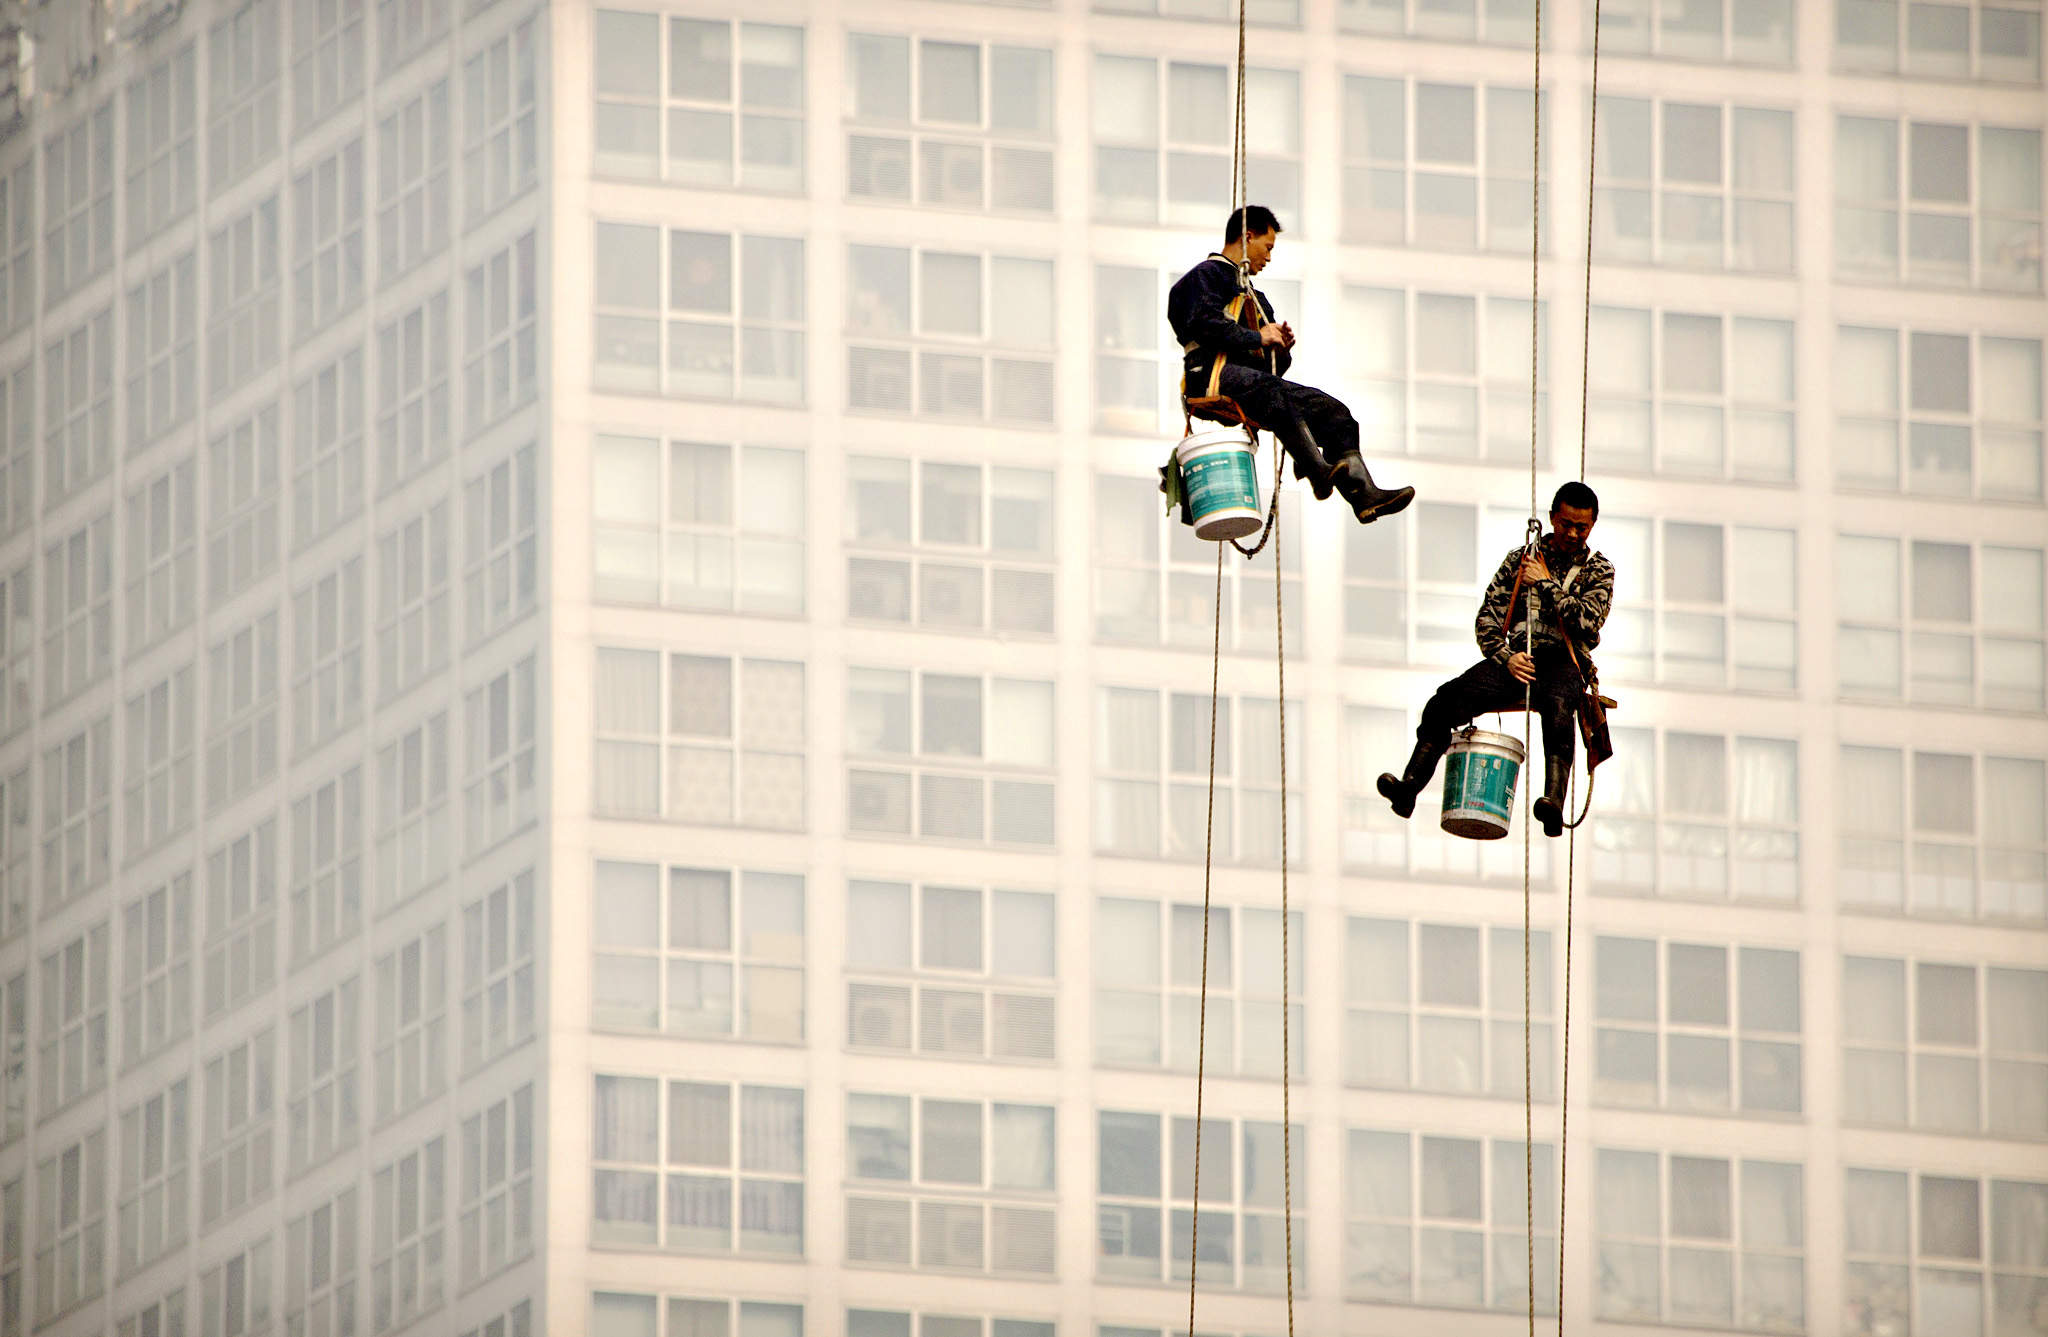 Window washers use cables to lower themselves from a skyscraper while working on a polluted day in Beijing, Tuesday, Oct. 6, 2015. Air quality readings in the city on Tuesday were at levels considered hazardous by international measuring standards